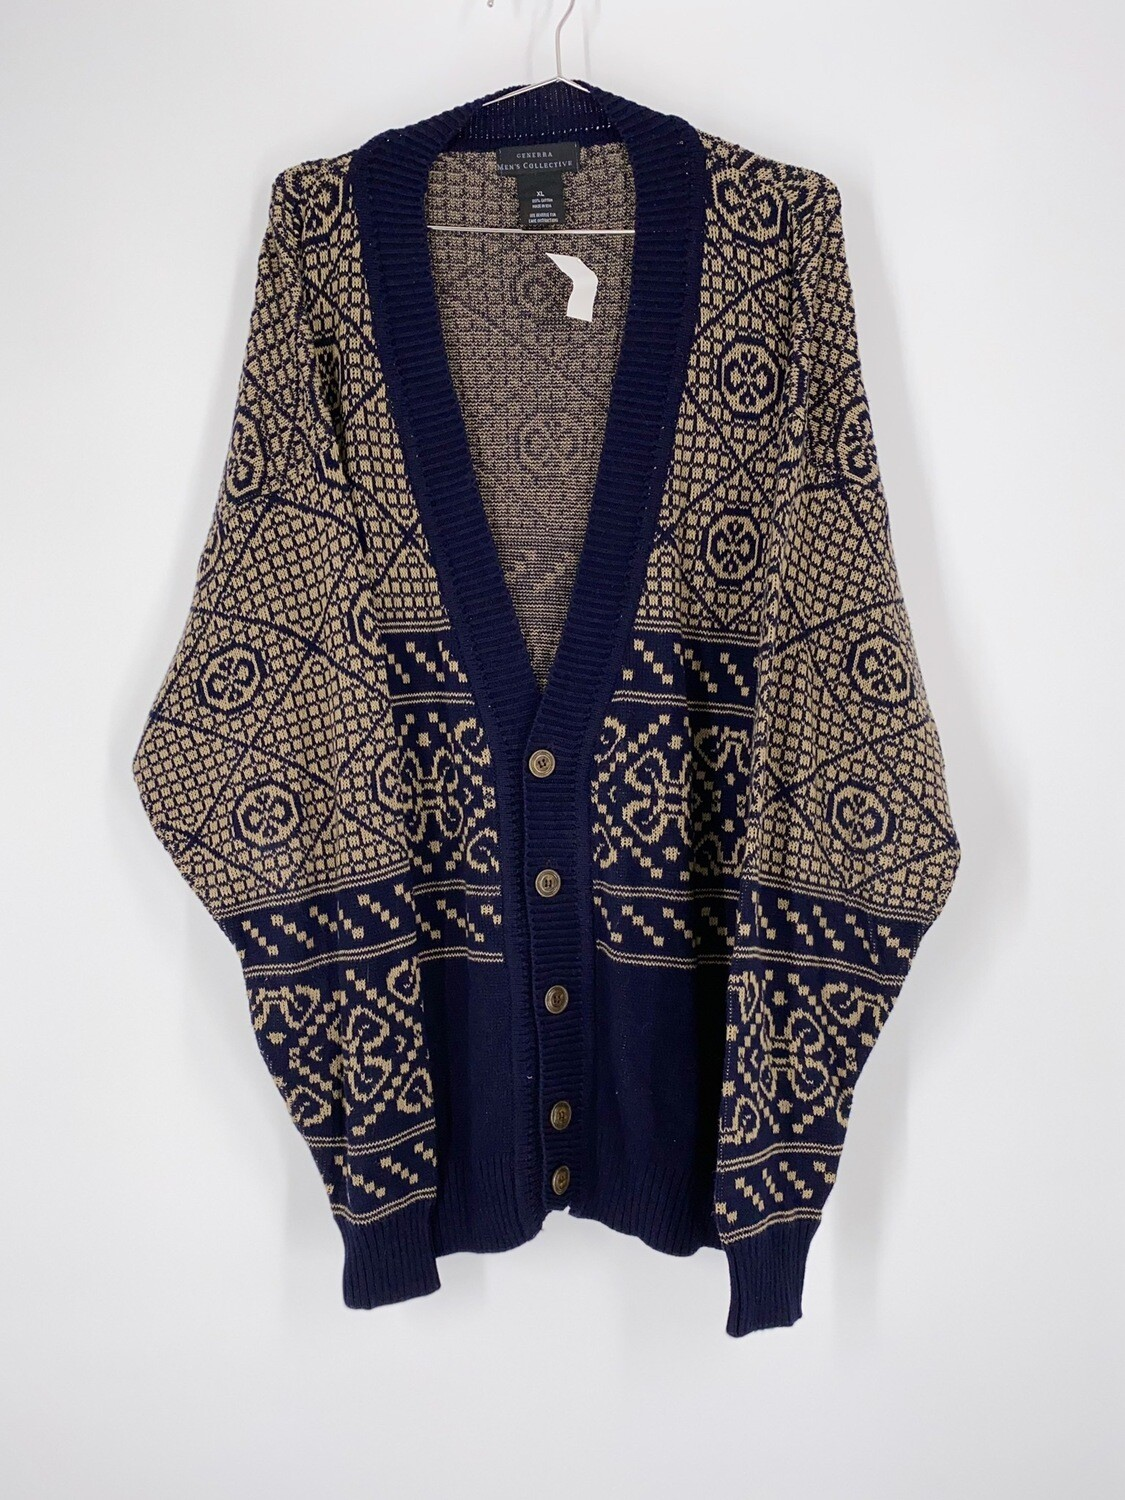 Generra Patterned Cardigan Size L